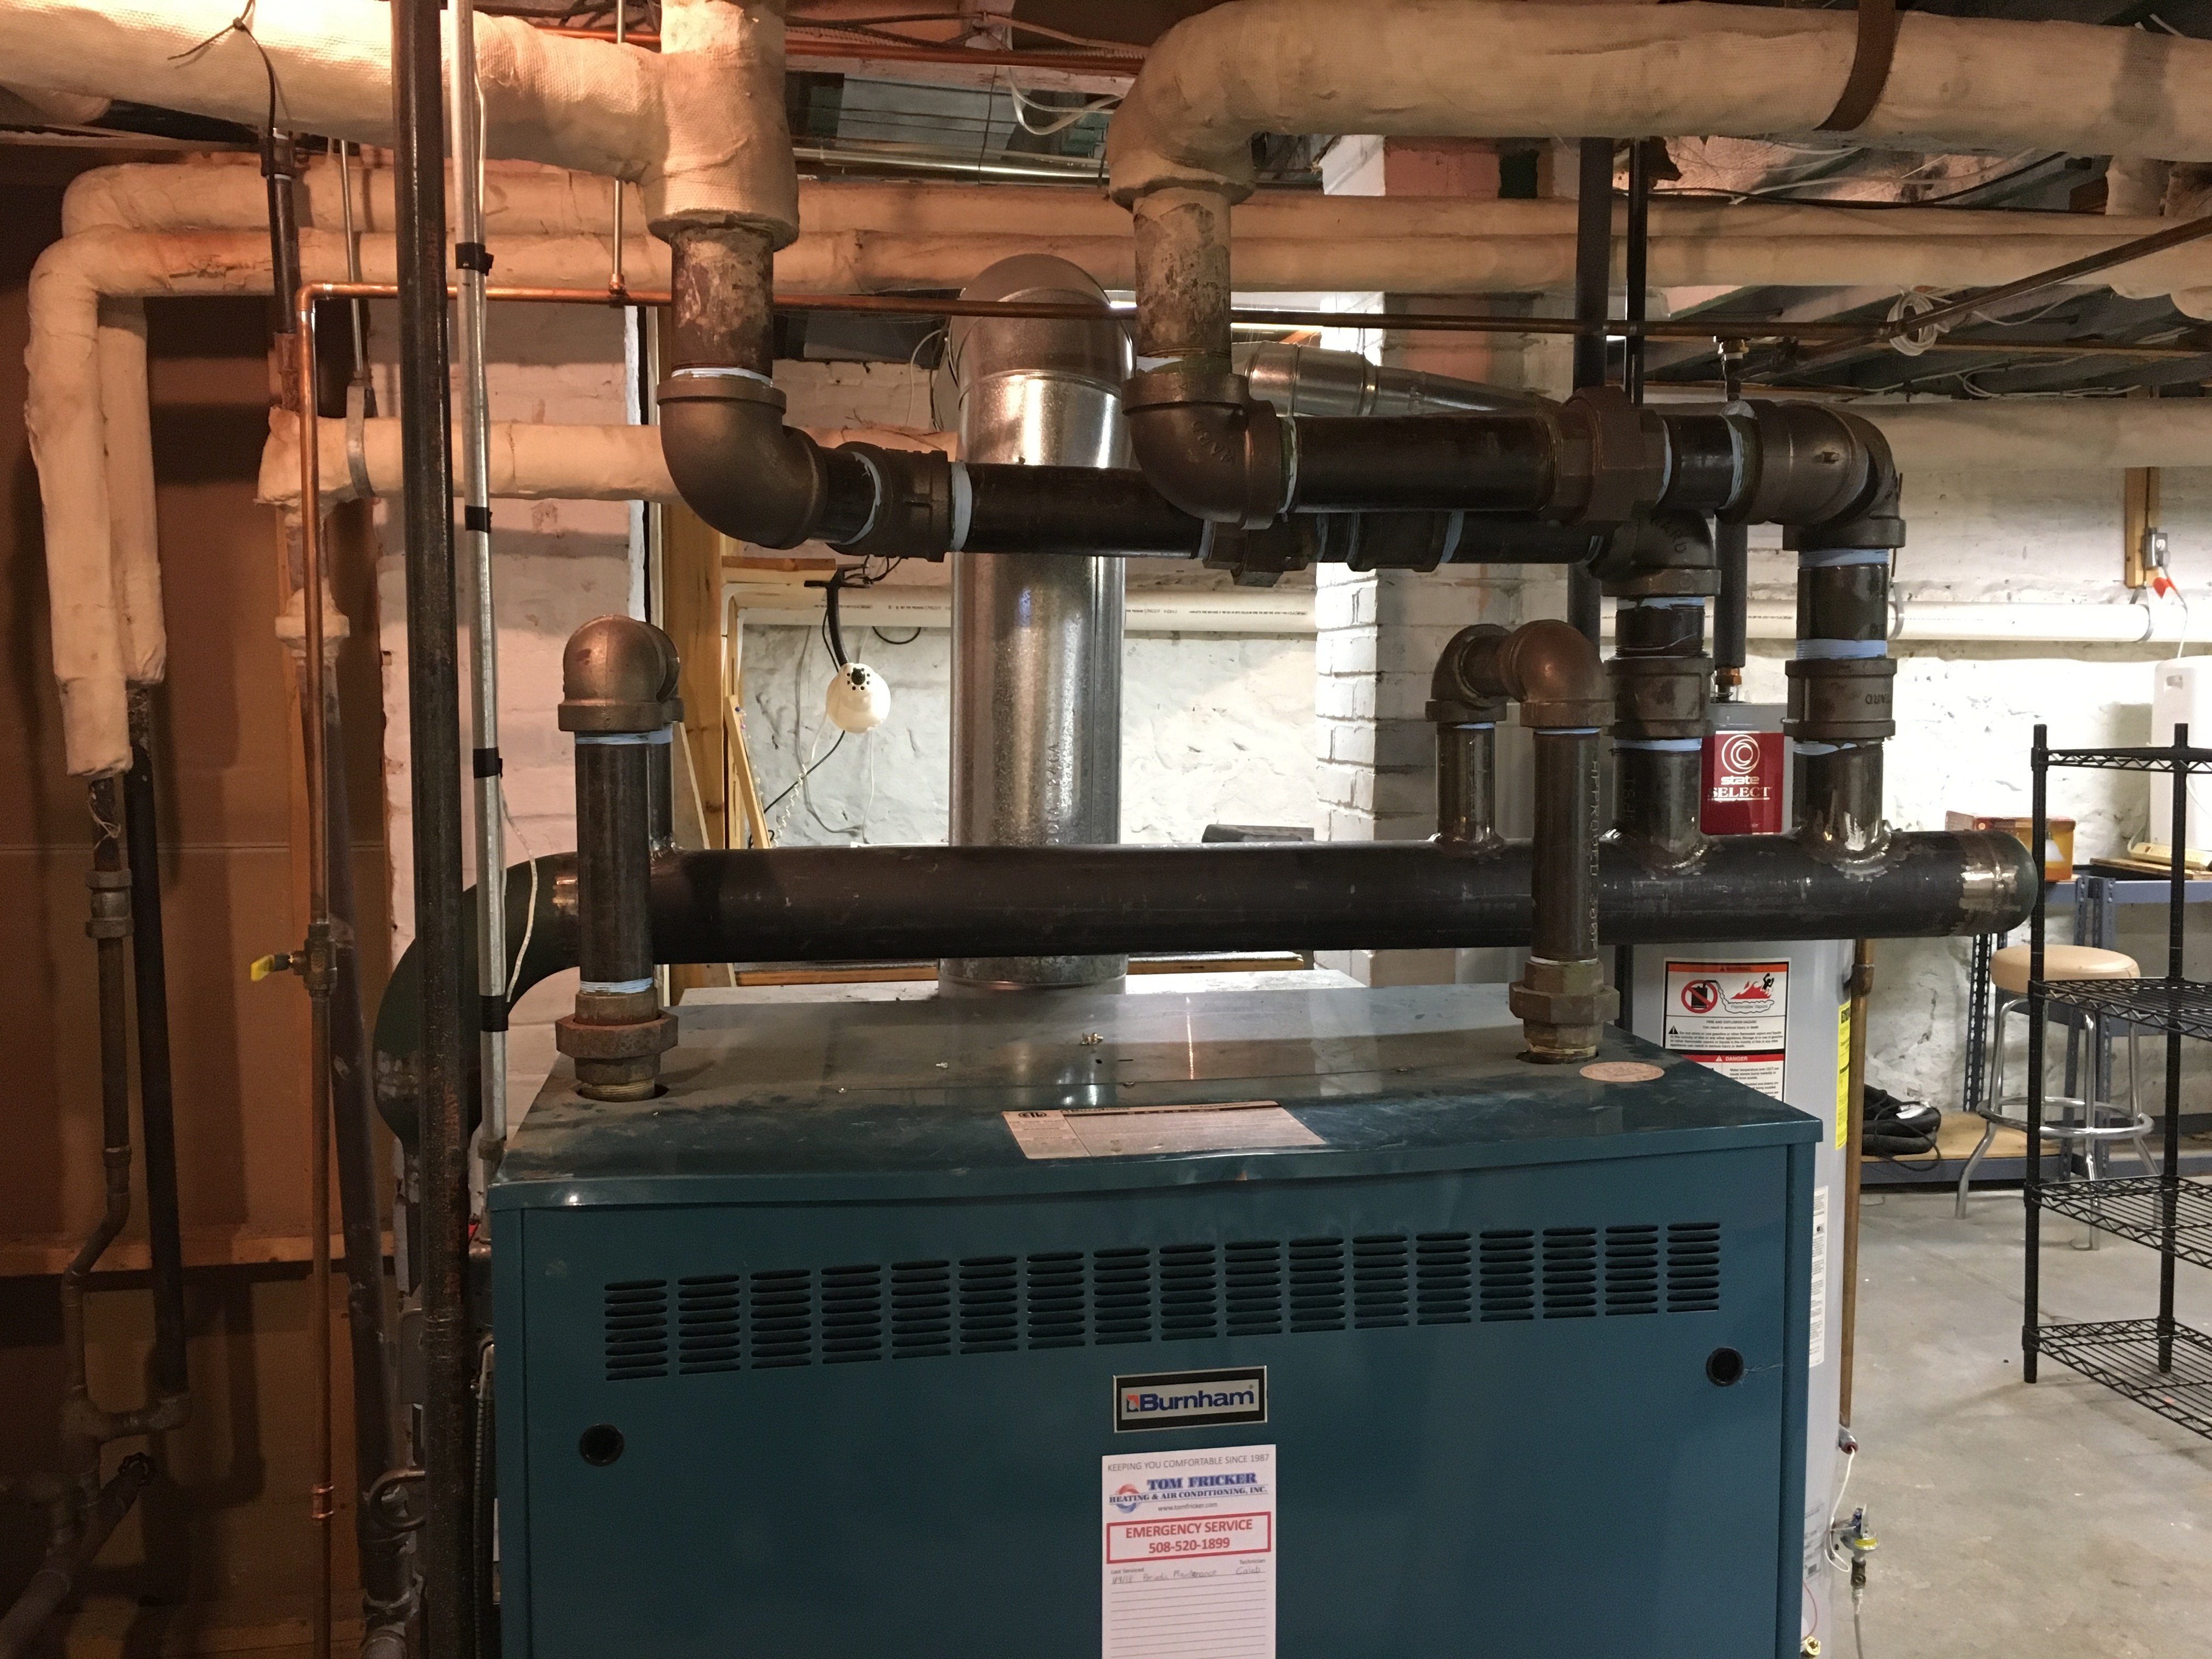 Near Boiler Piping Layout Heating Help The Wall Pictures 7afdddce C2fa 447f 8b33 660e1ad21652jpeg